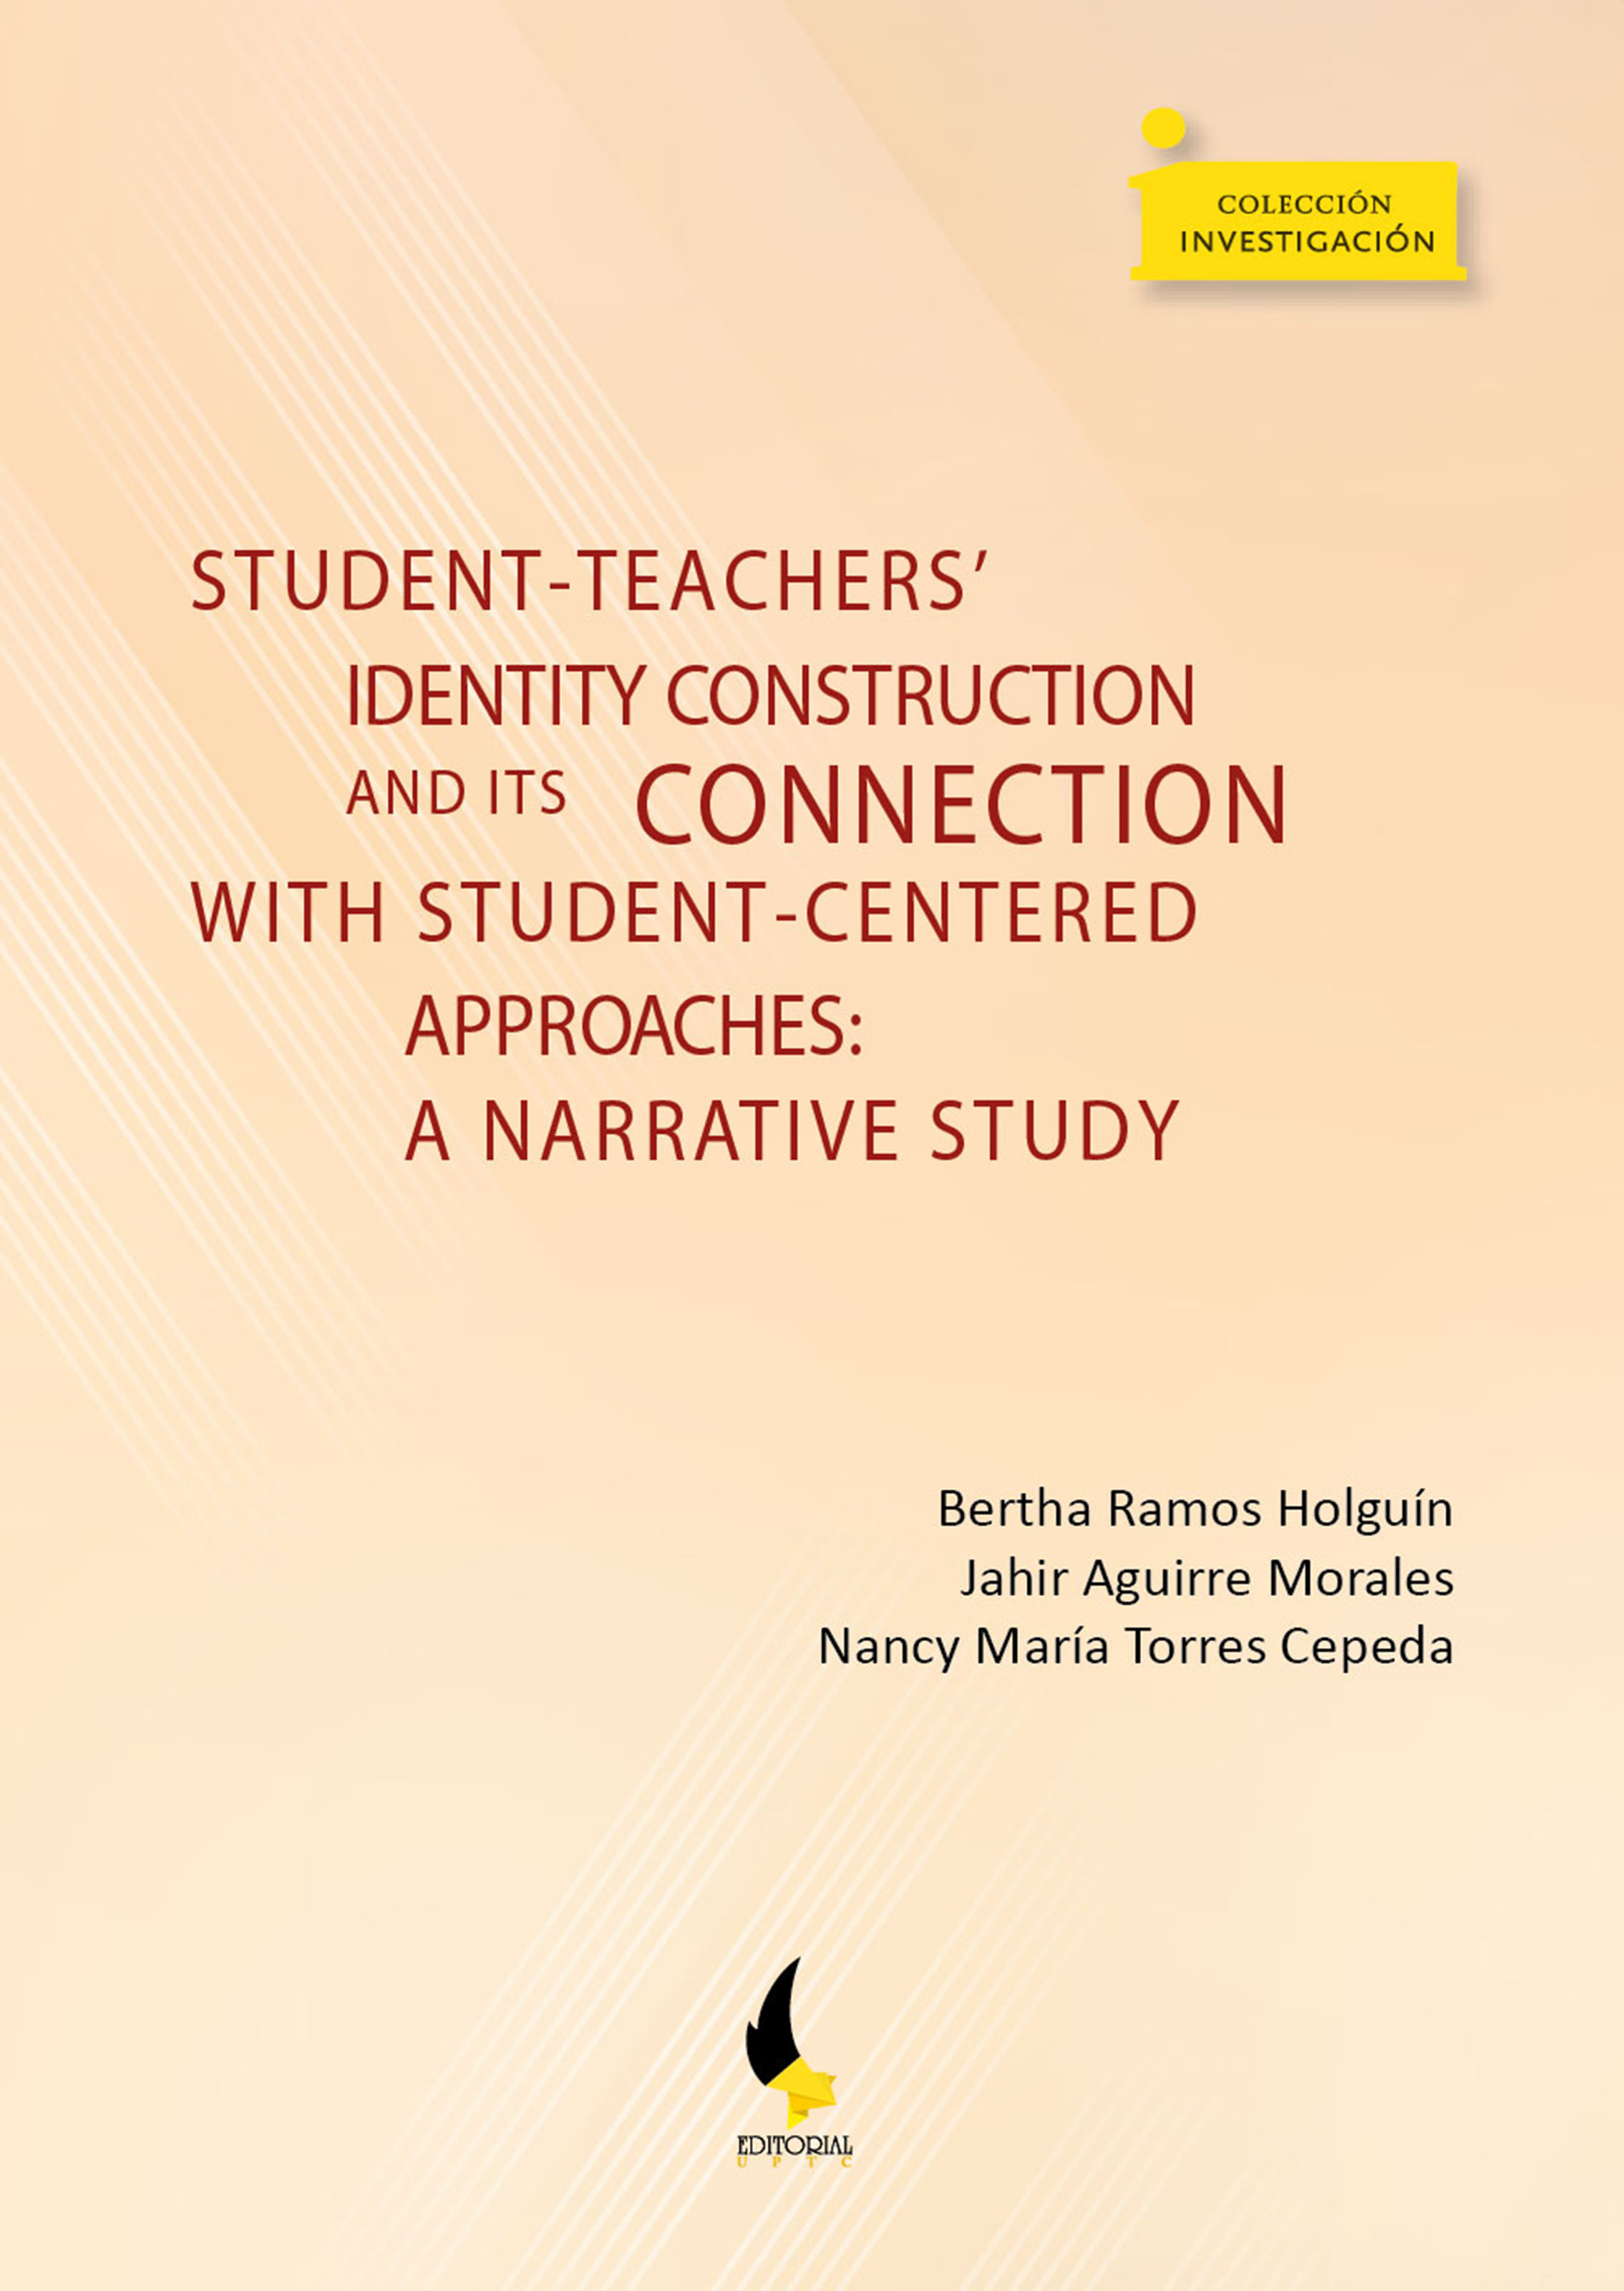 Student-teachers' identity construction and